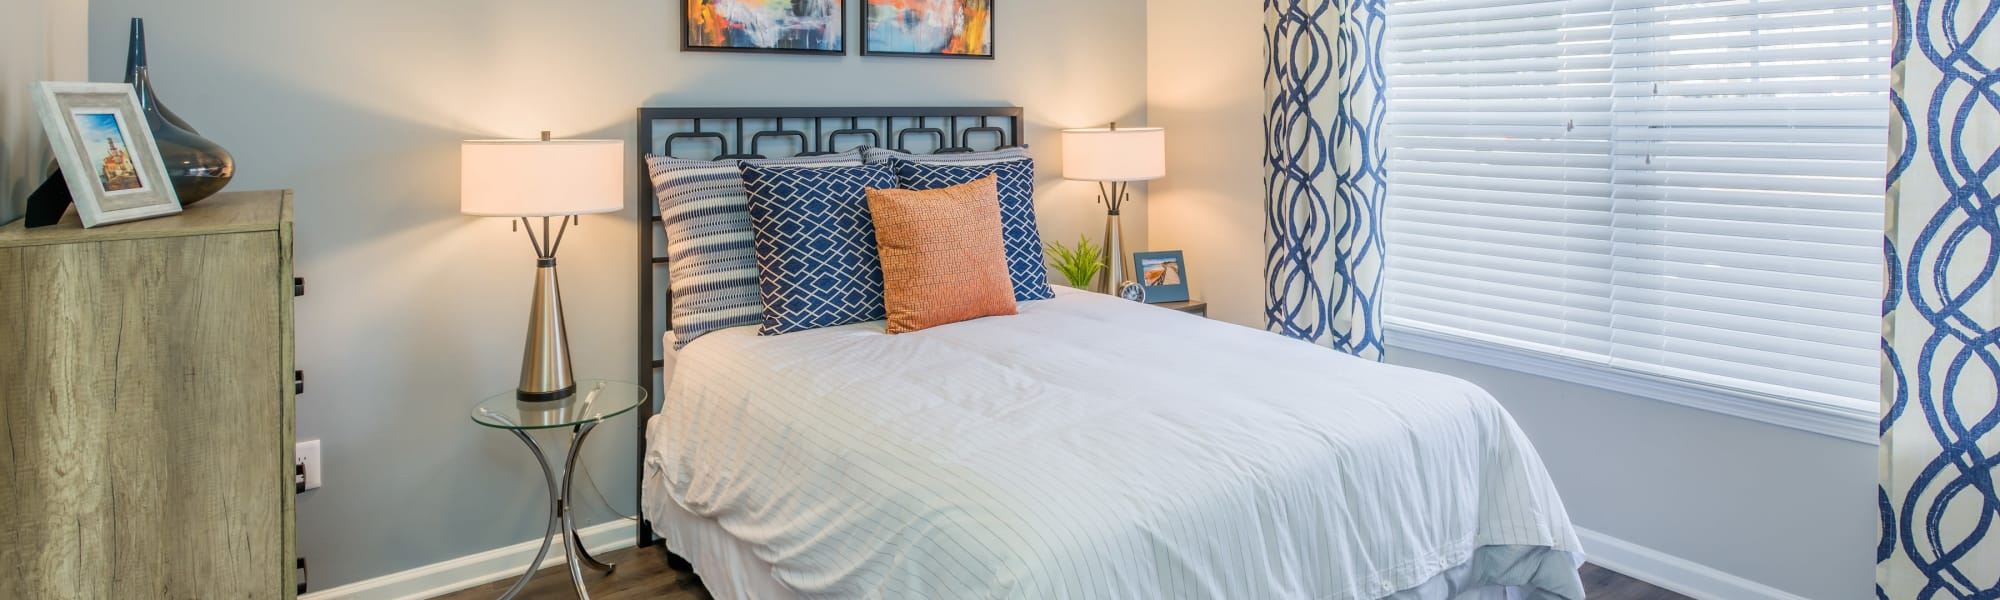 Virtual tours of The Avant at Steele Creek in Charlotte, North Carolina